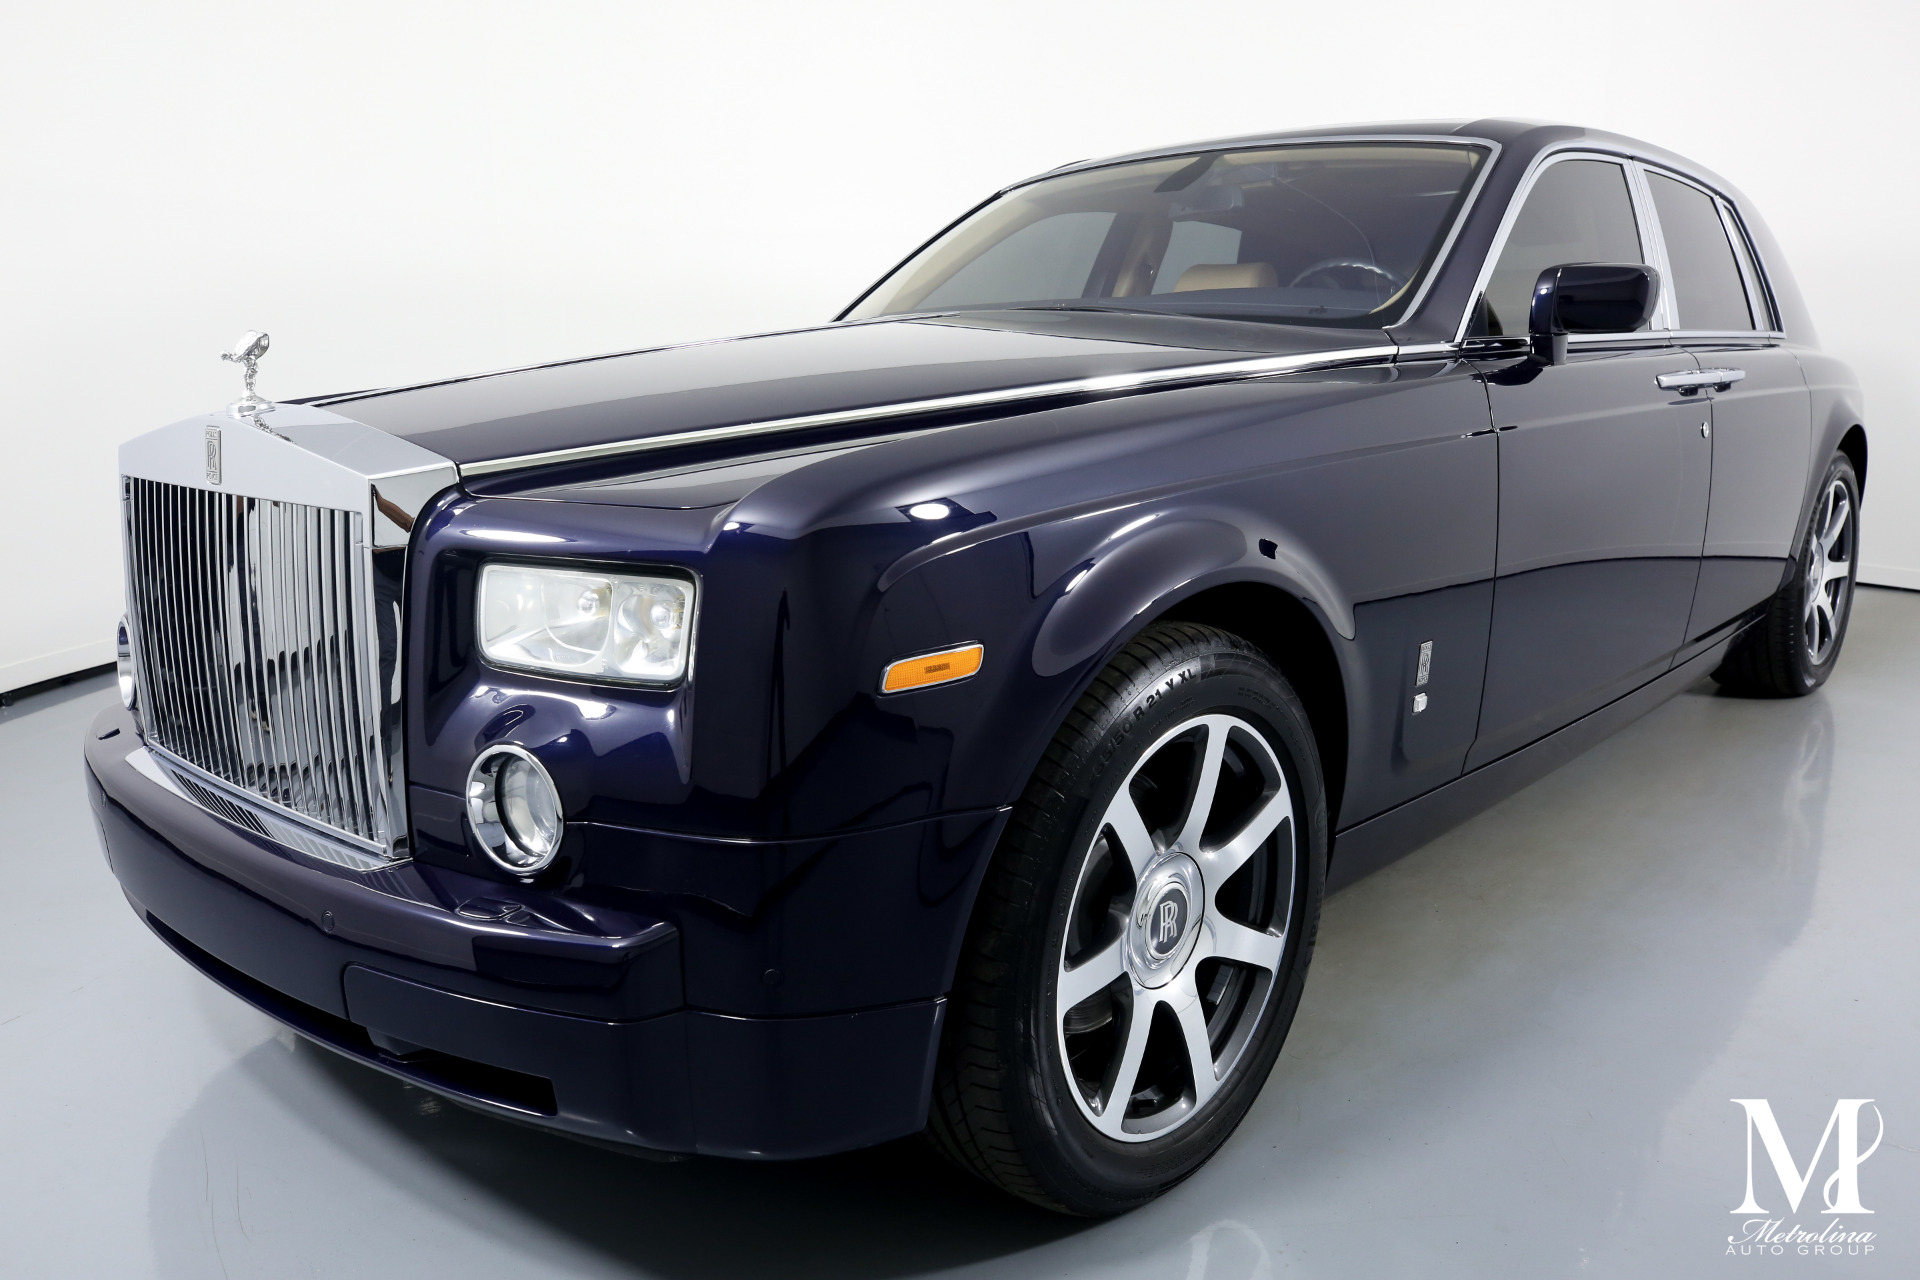 Used 2005 Rolls-Royce Phantom for sale Sold at Metrolina Auto Group in Charlotte NC 28217 - 4